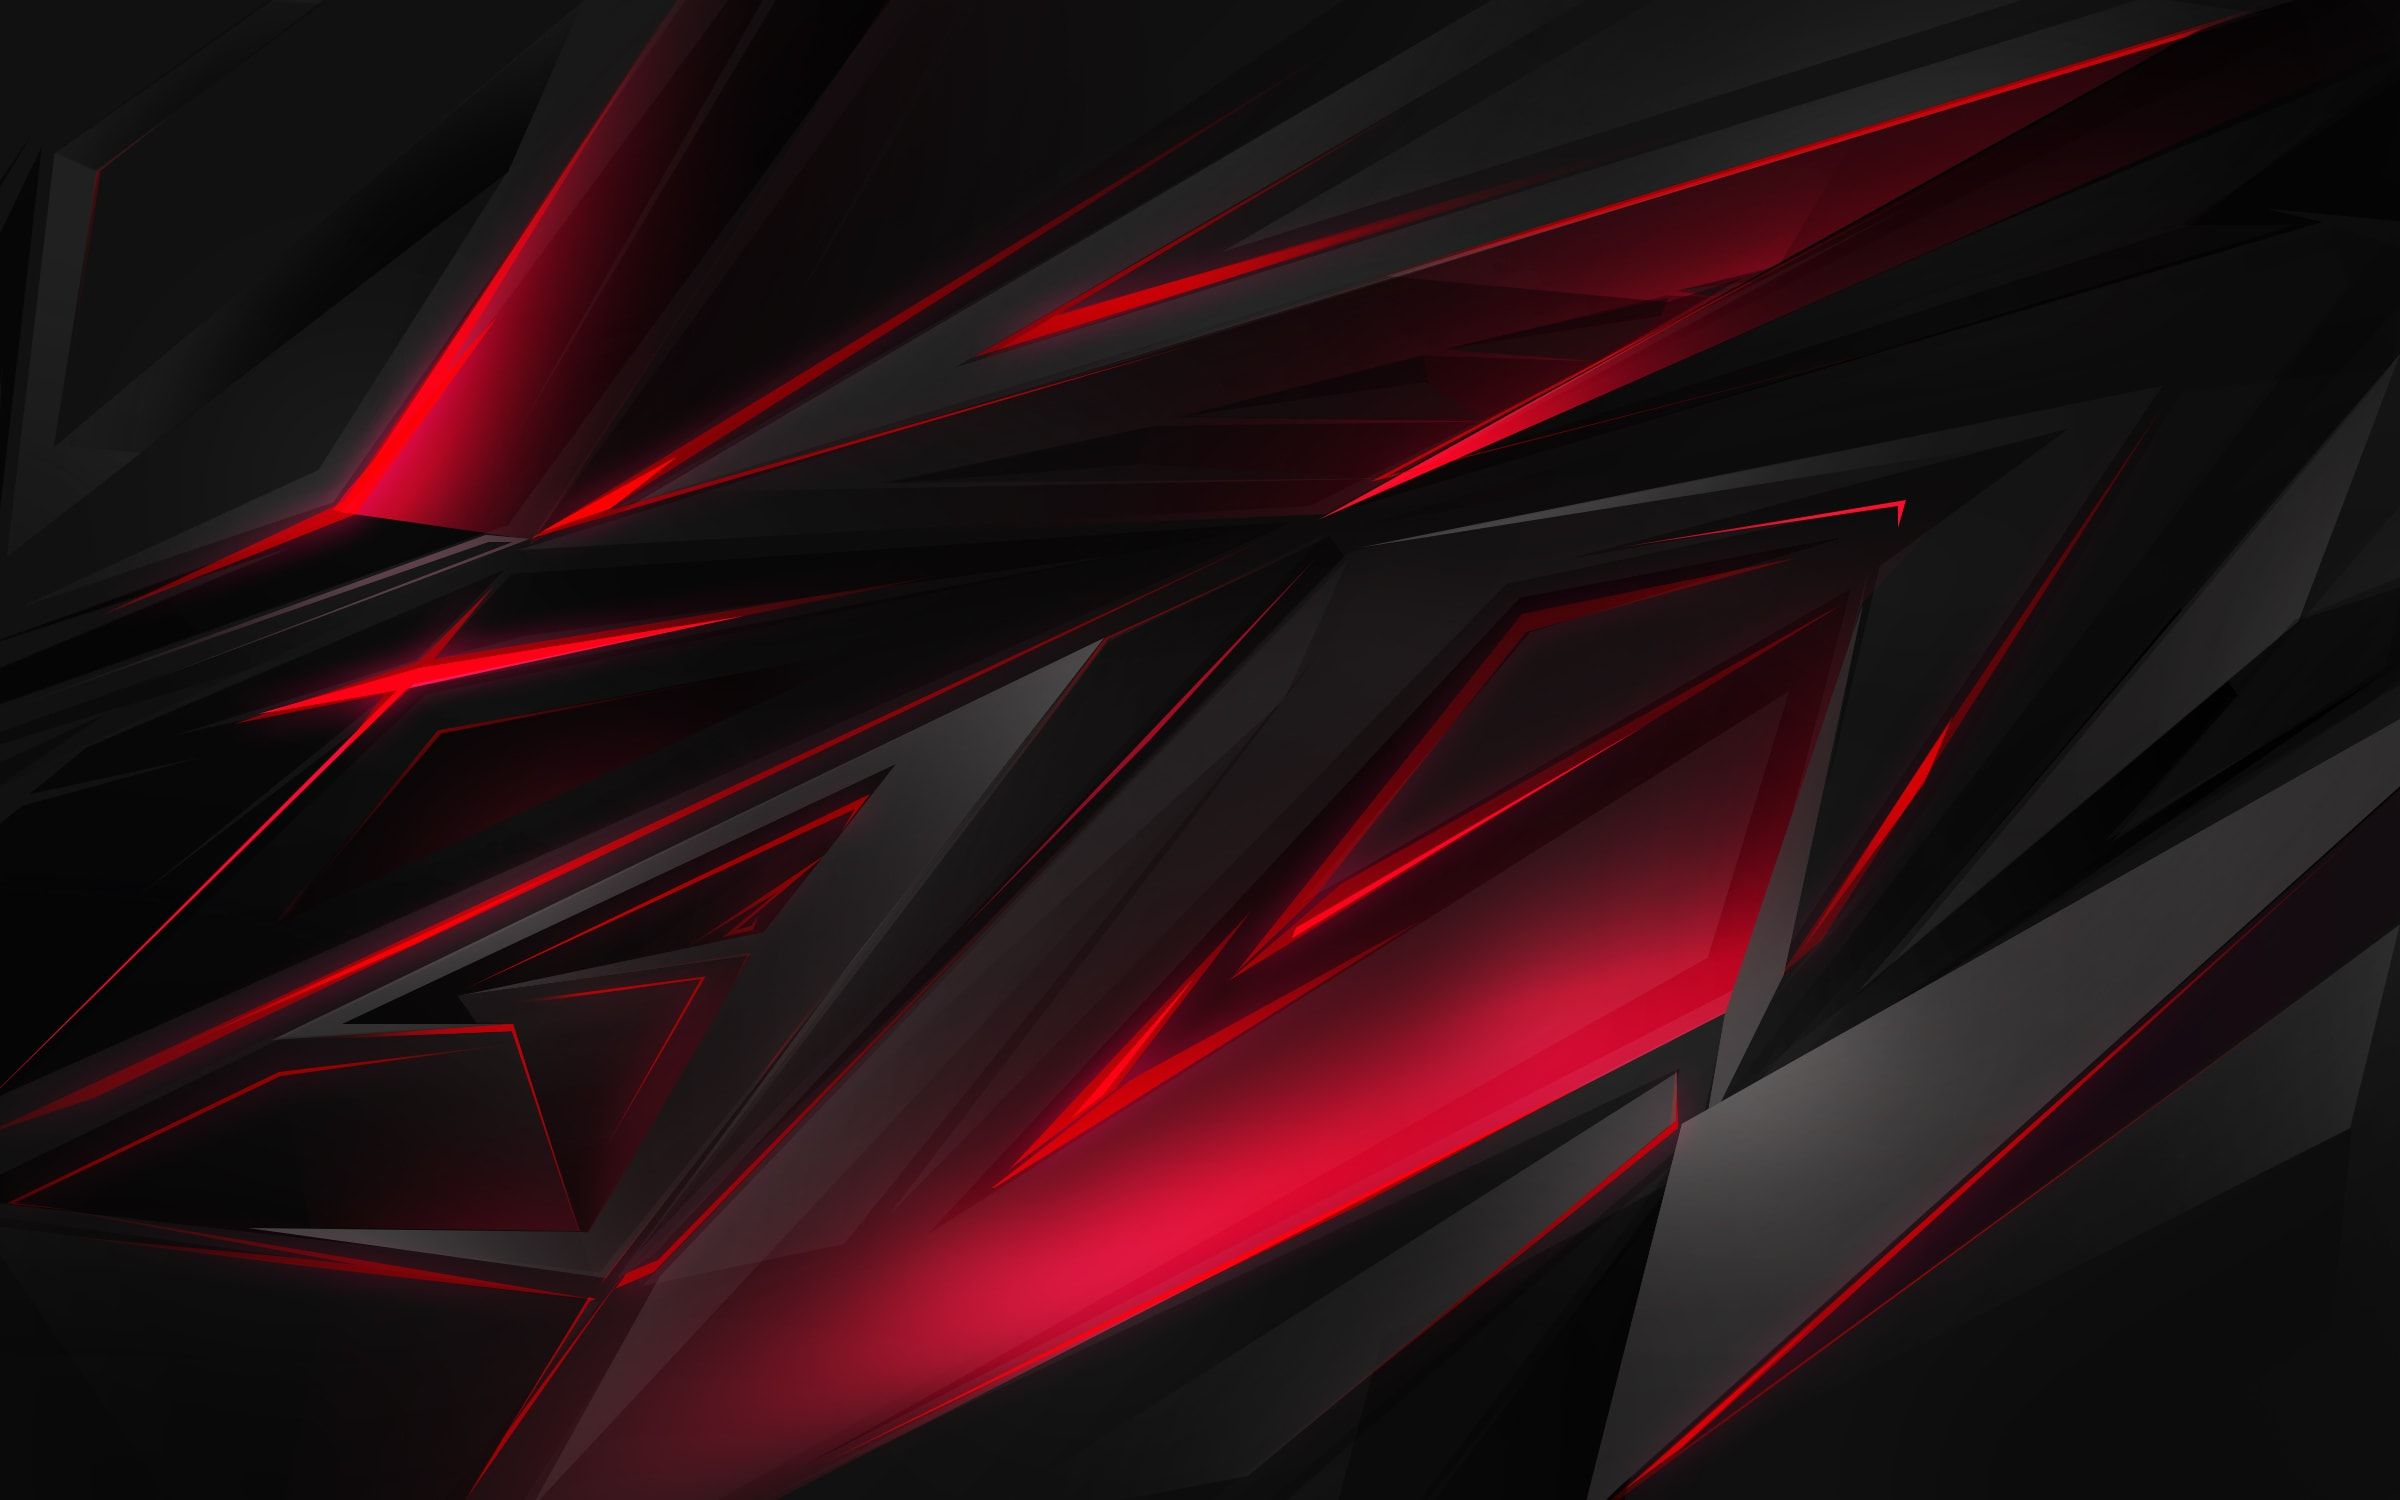 Polygonal Abstract Red Dark Red Wallpaper Cool Wallpaper